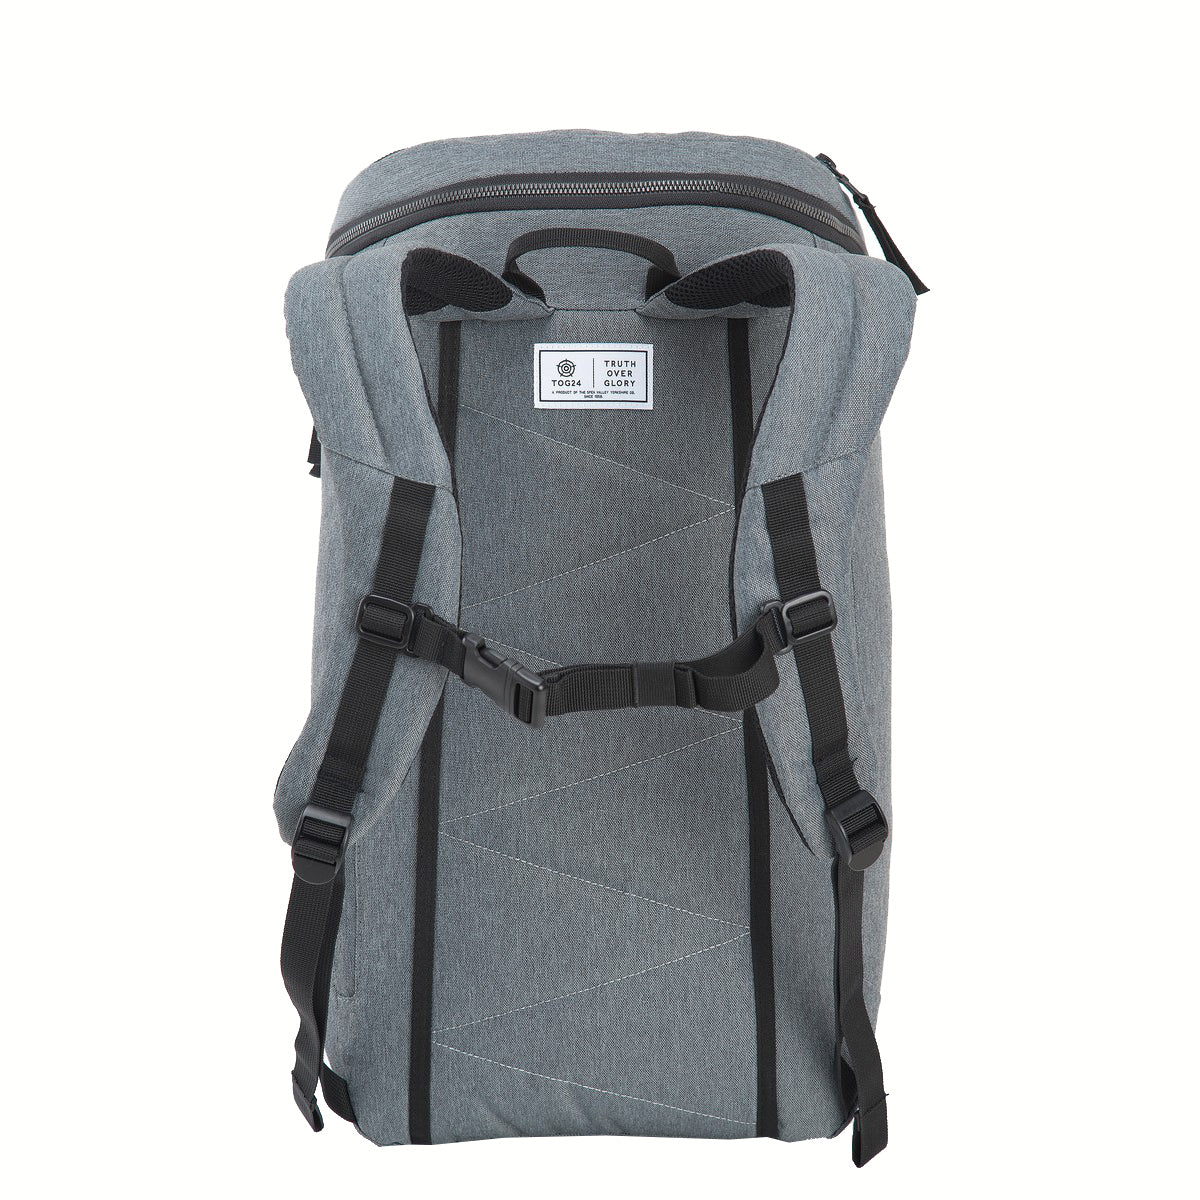 Fatham 30L Backpack - Dark Grey Marl image 4